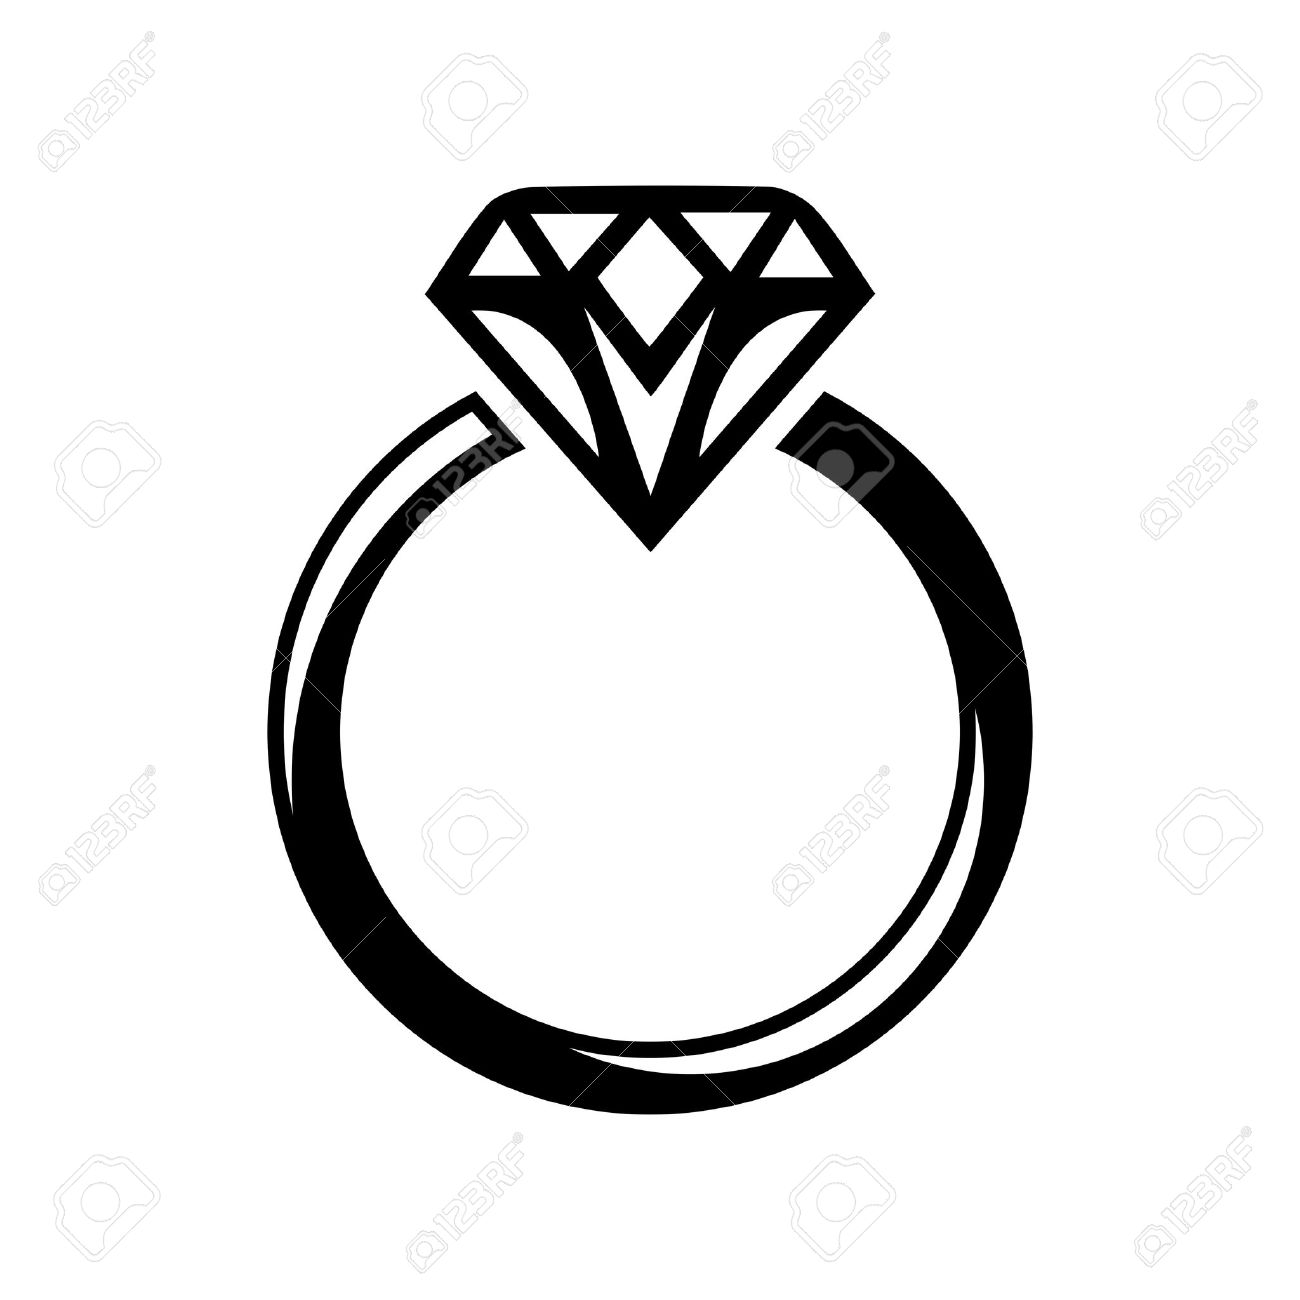 21227 Engagement Ring Stock Illustrations Cliparts And Royalty